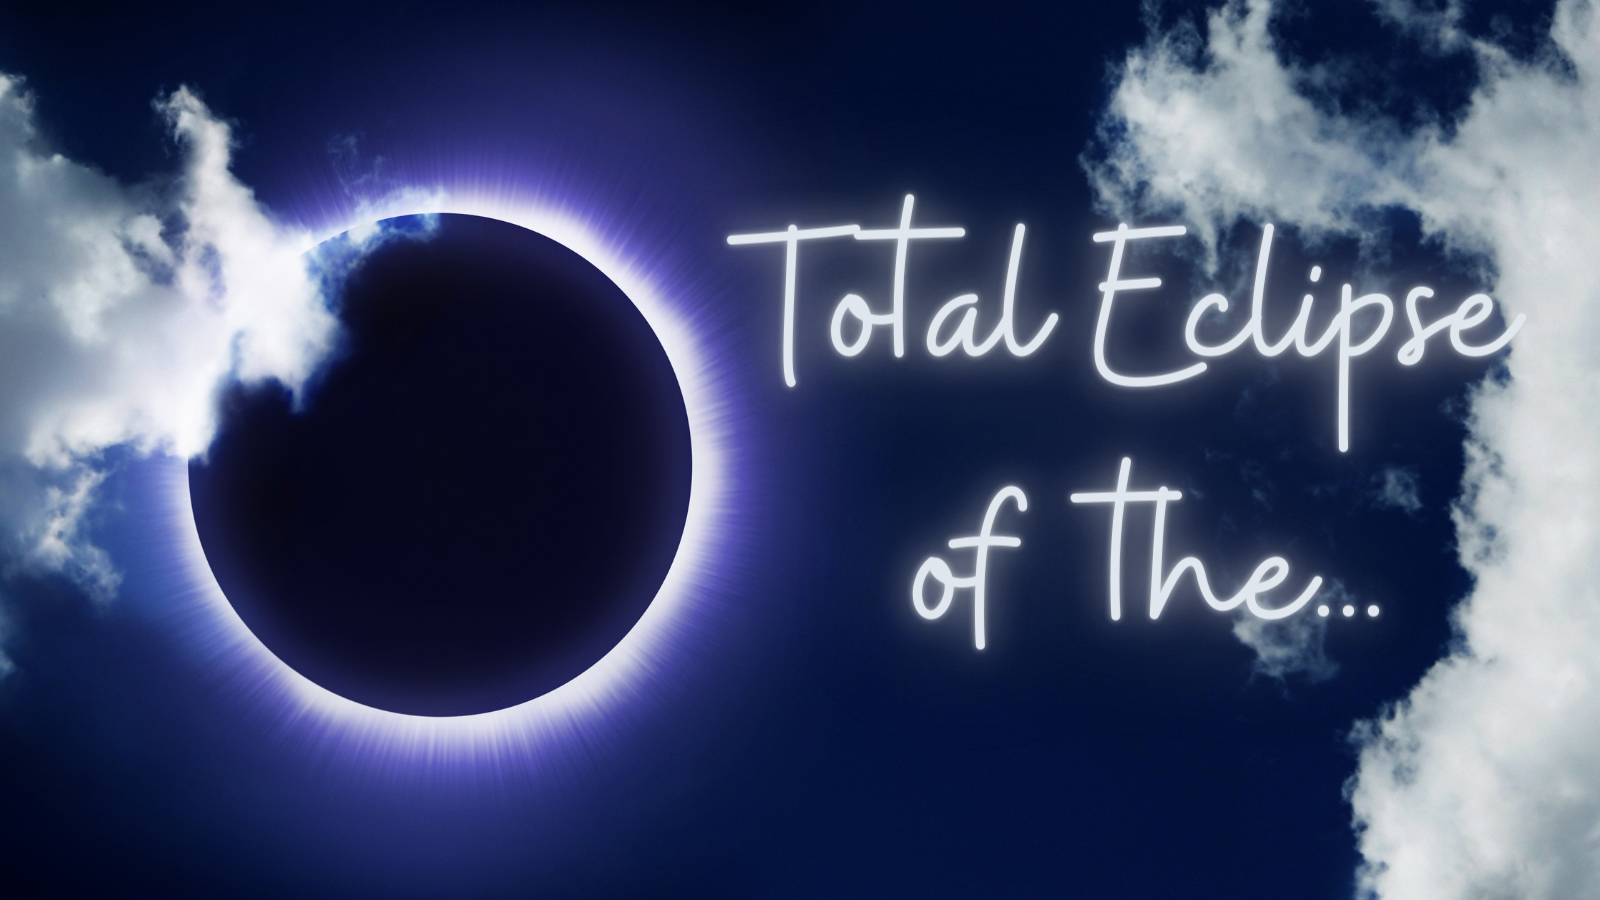 Total Eclipse of the...